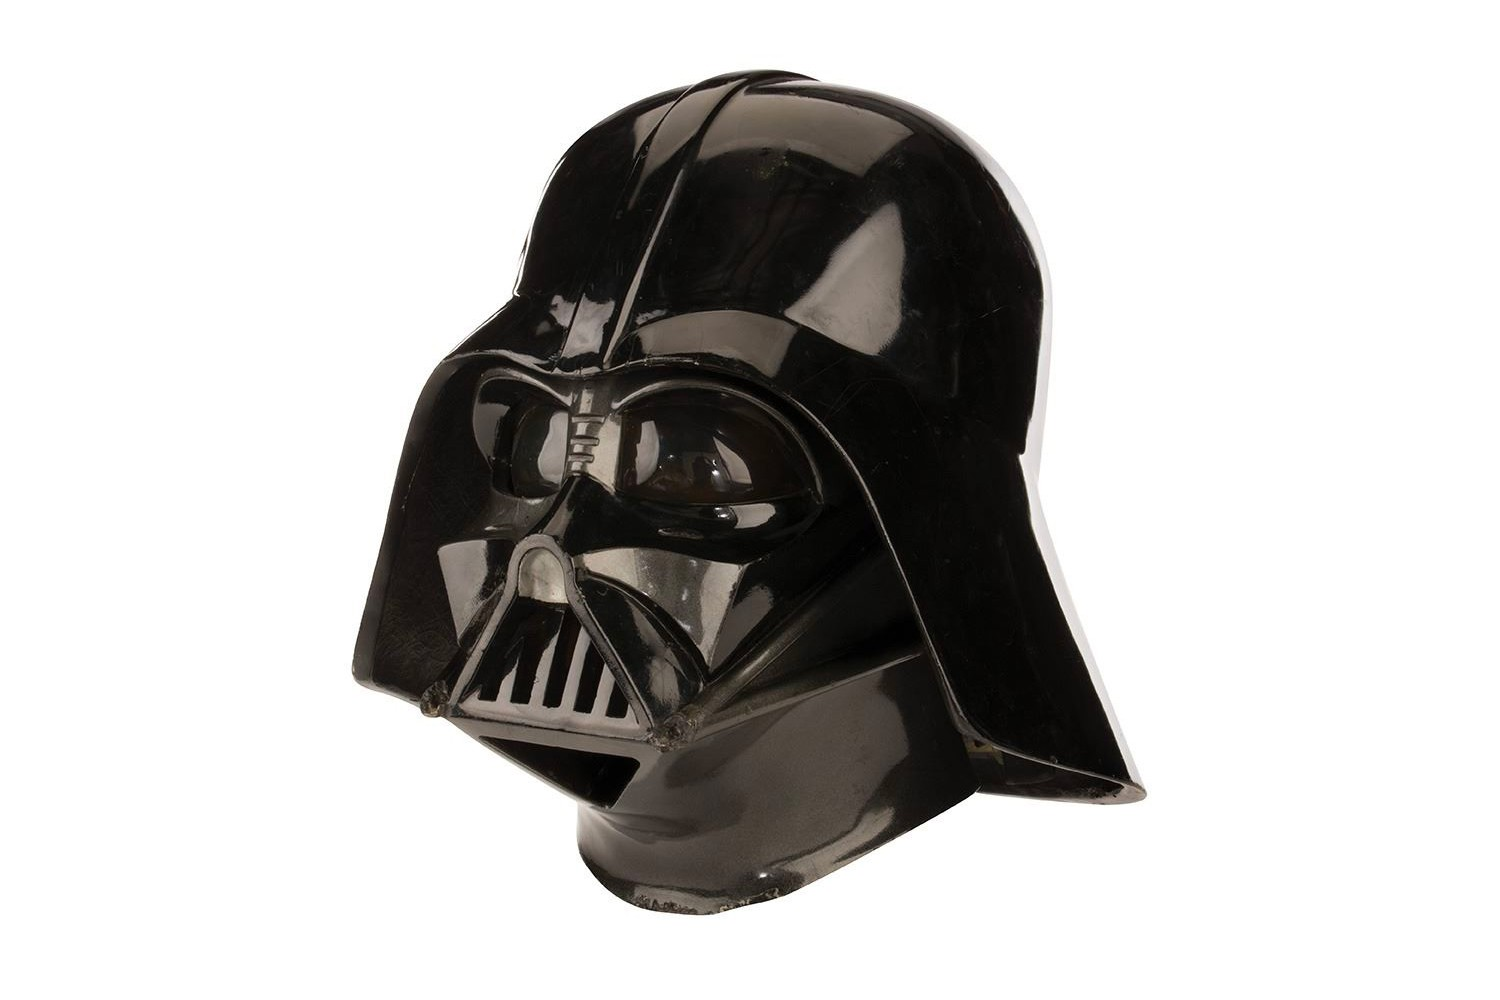 'Star Wars: スター・ウォーズ The Empire Strikes Back' ダース・ベイダー Darth Vader ヘルメット マスク 帝国の逆襲  Helmet Auction David Prowse 1980 ルーク スカイウォーカー  マーベル used in film real science fiction fantasy Lucasfilm George Lucas luke skywalker collectible memorabilia